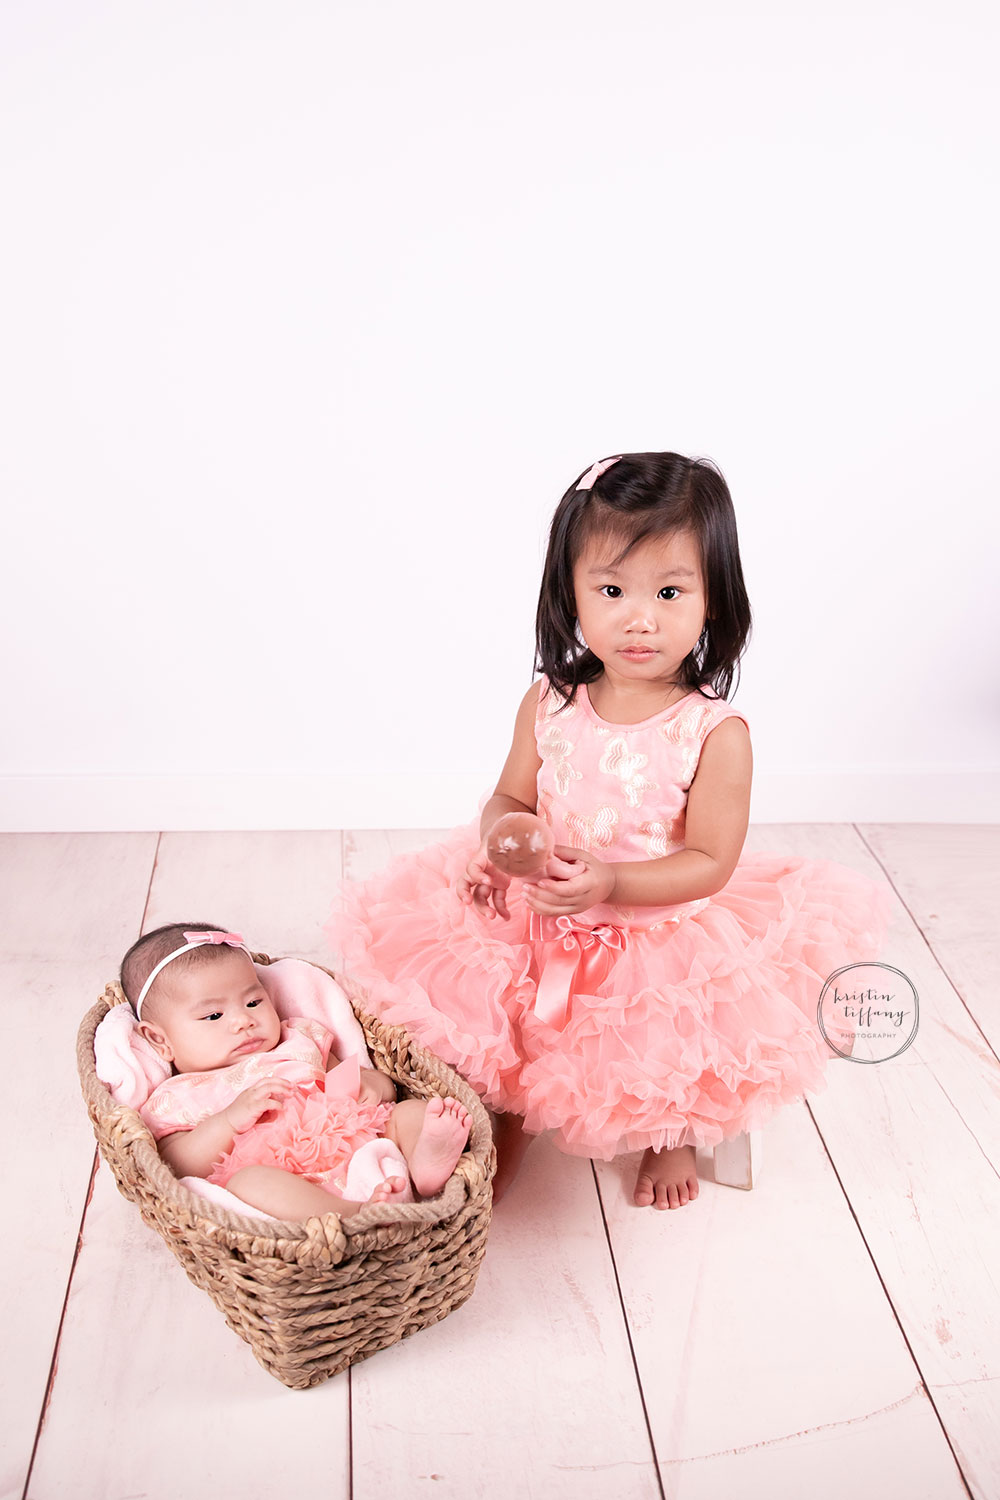 a photo of a baby girl and her sister at her photo session